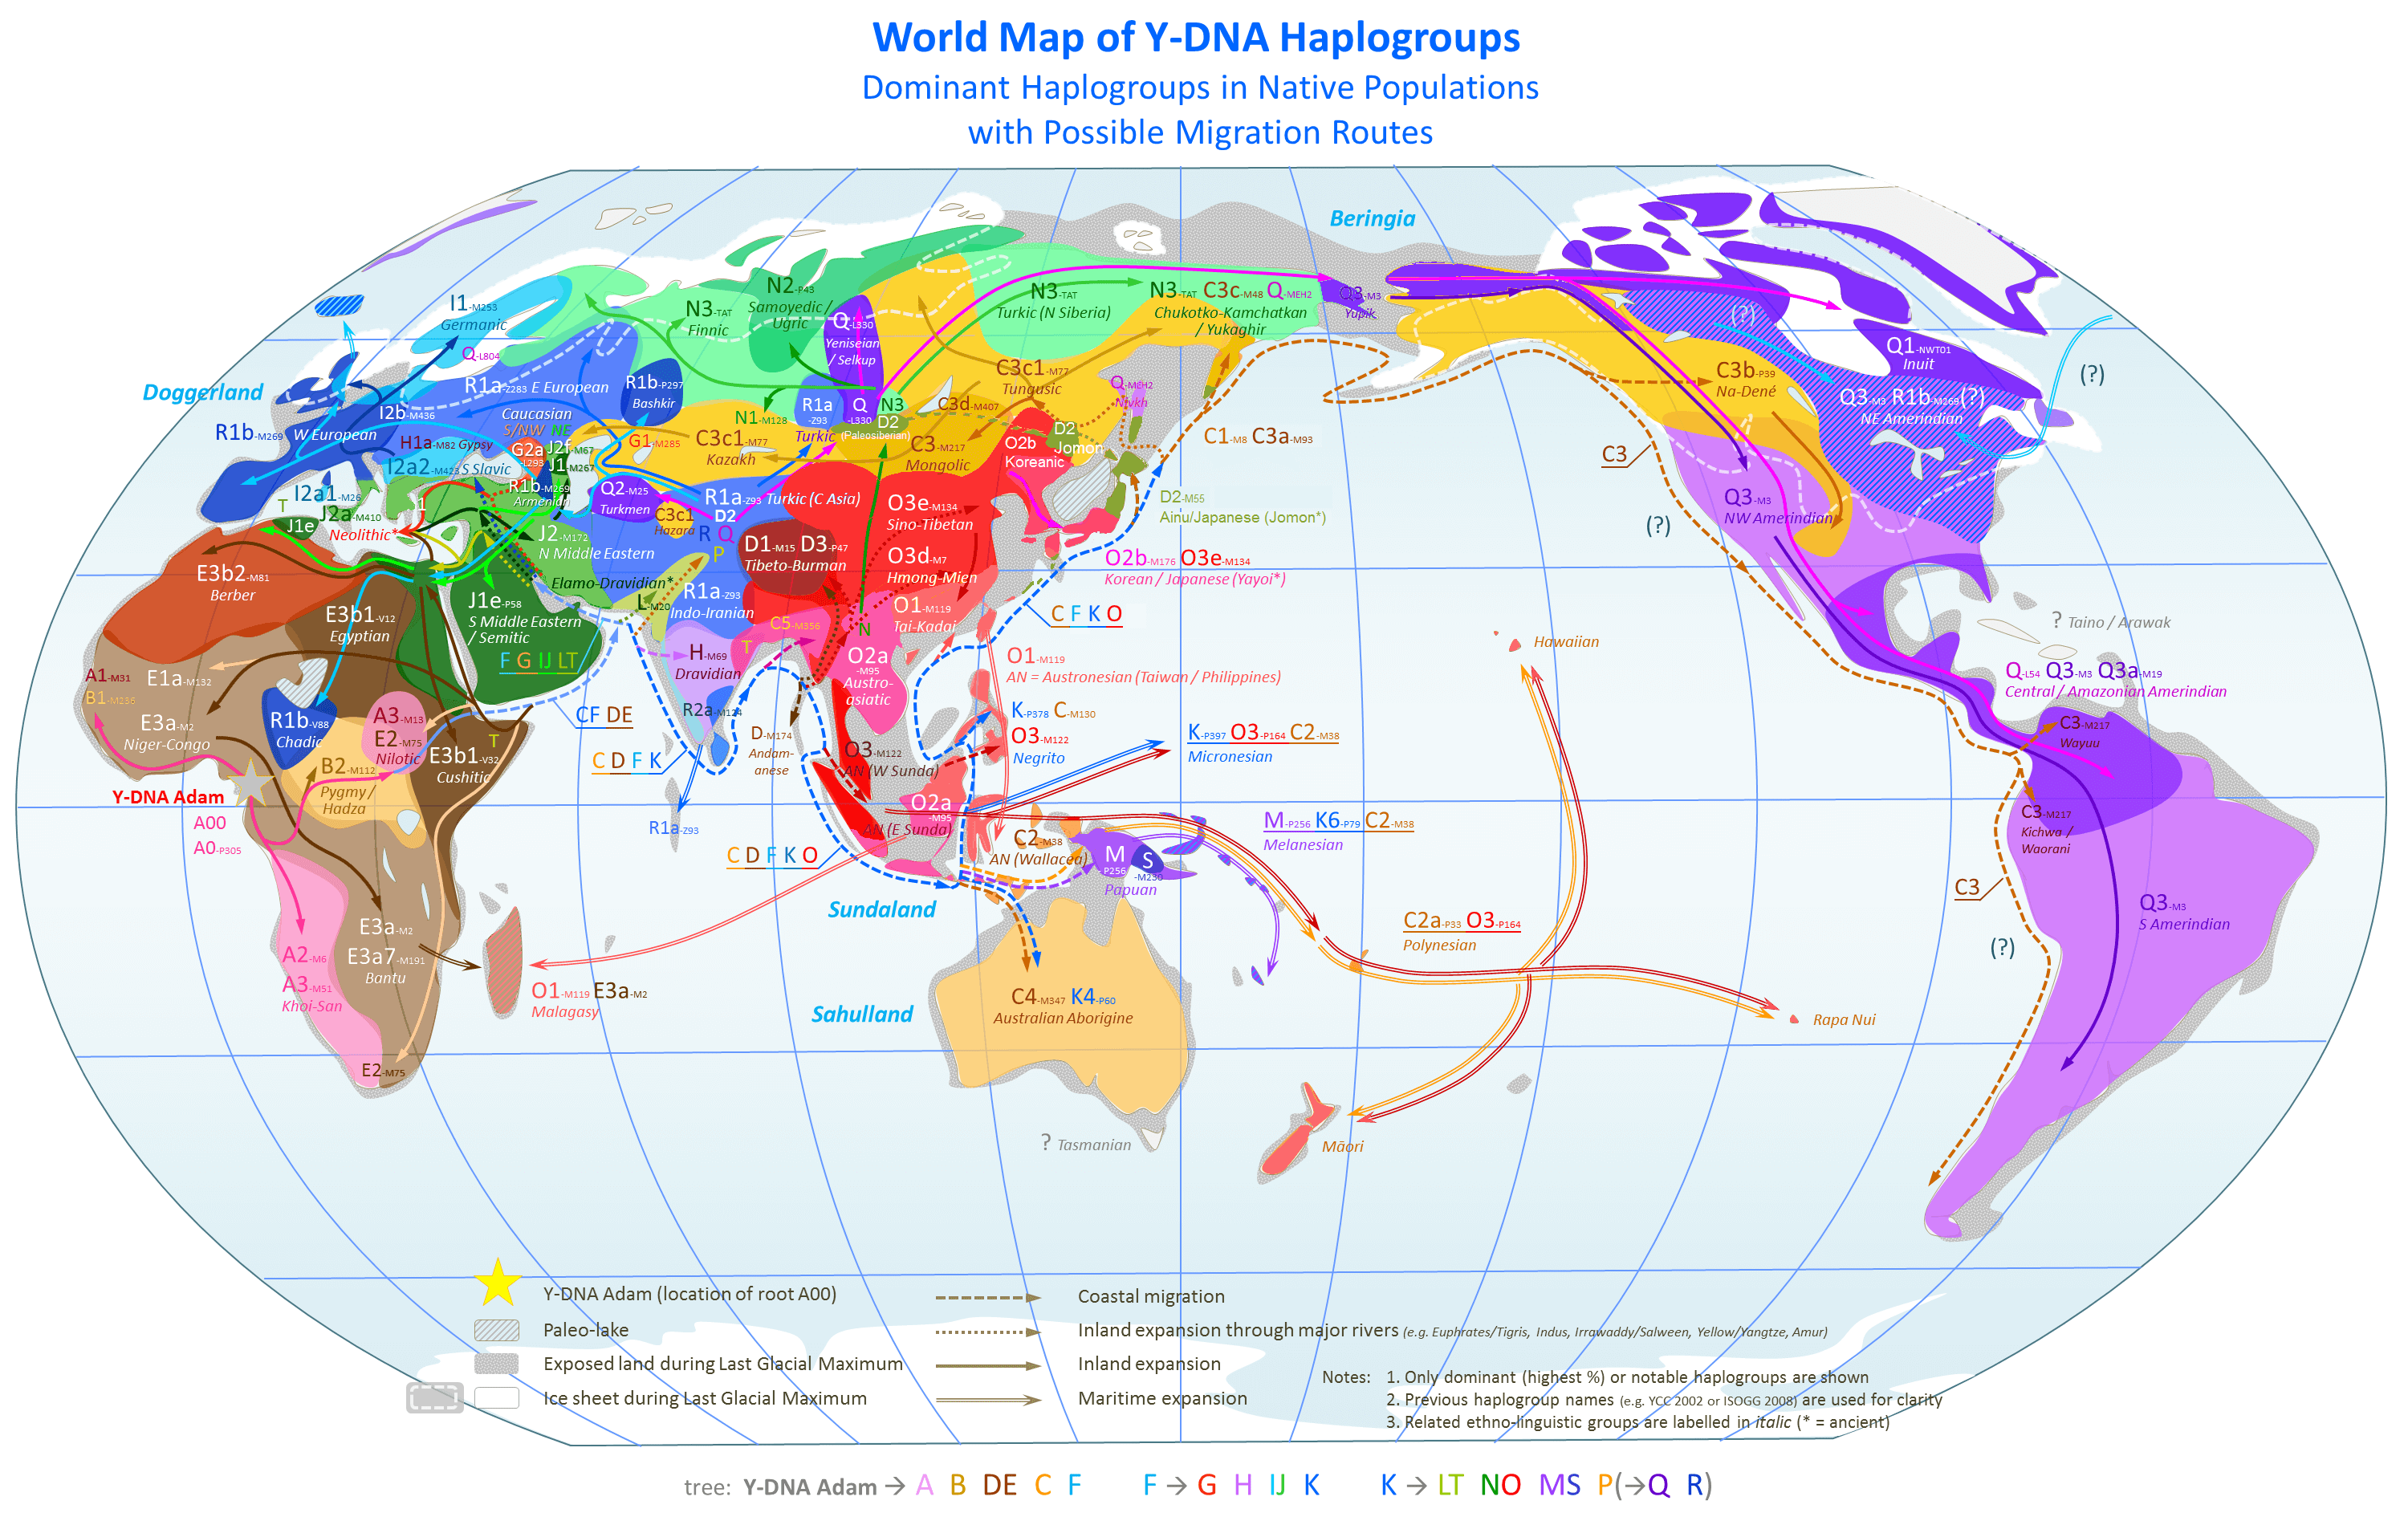 World_Map_of_Y-DNA_Haplogroups.png